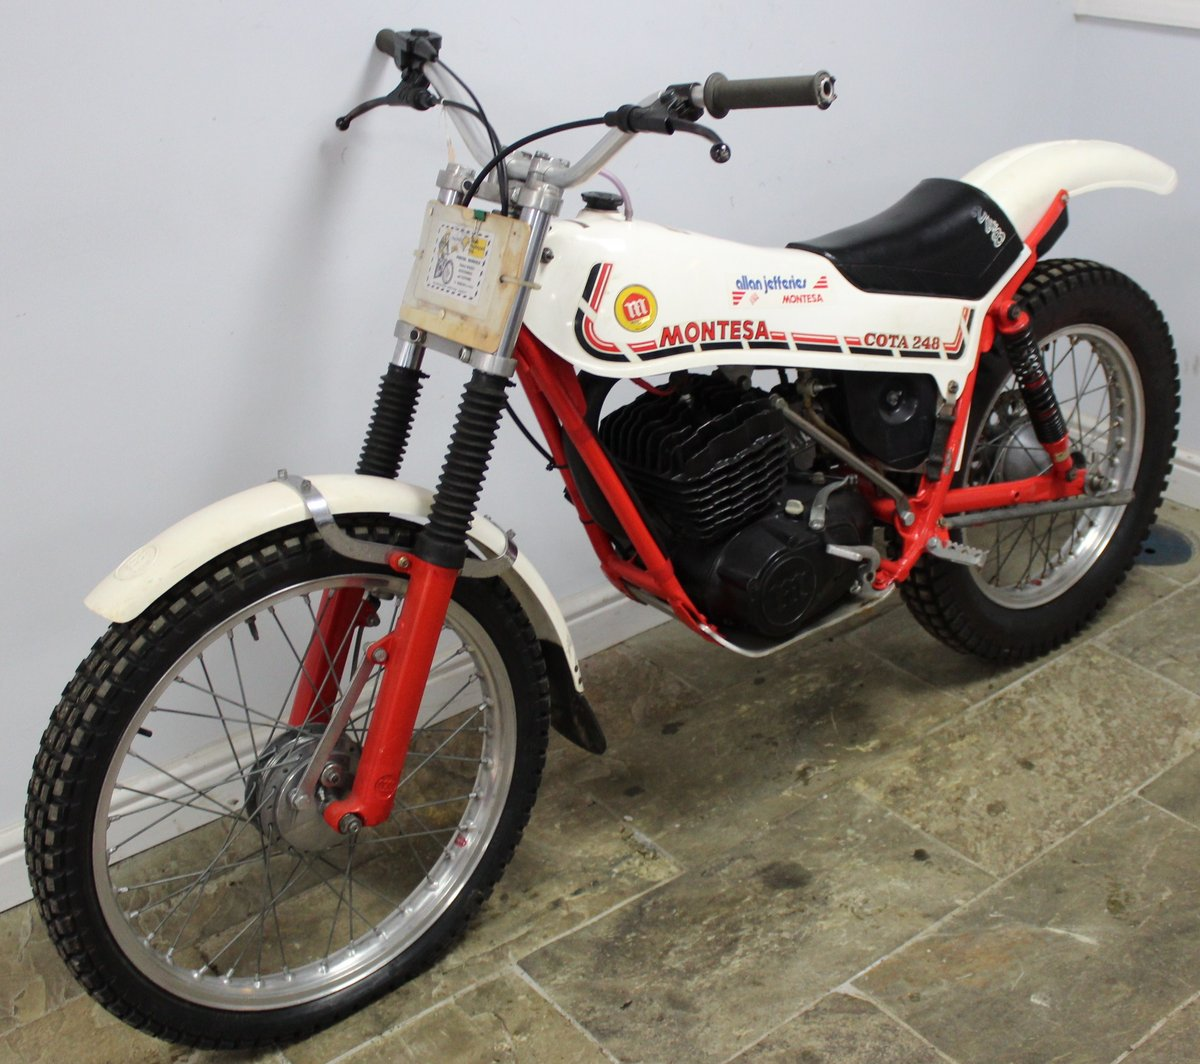 1981 Montesa Cota 248 Twin Shock Trials Bike Excellent  For Sale (picture 6 of 6)